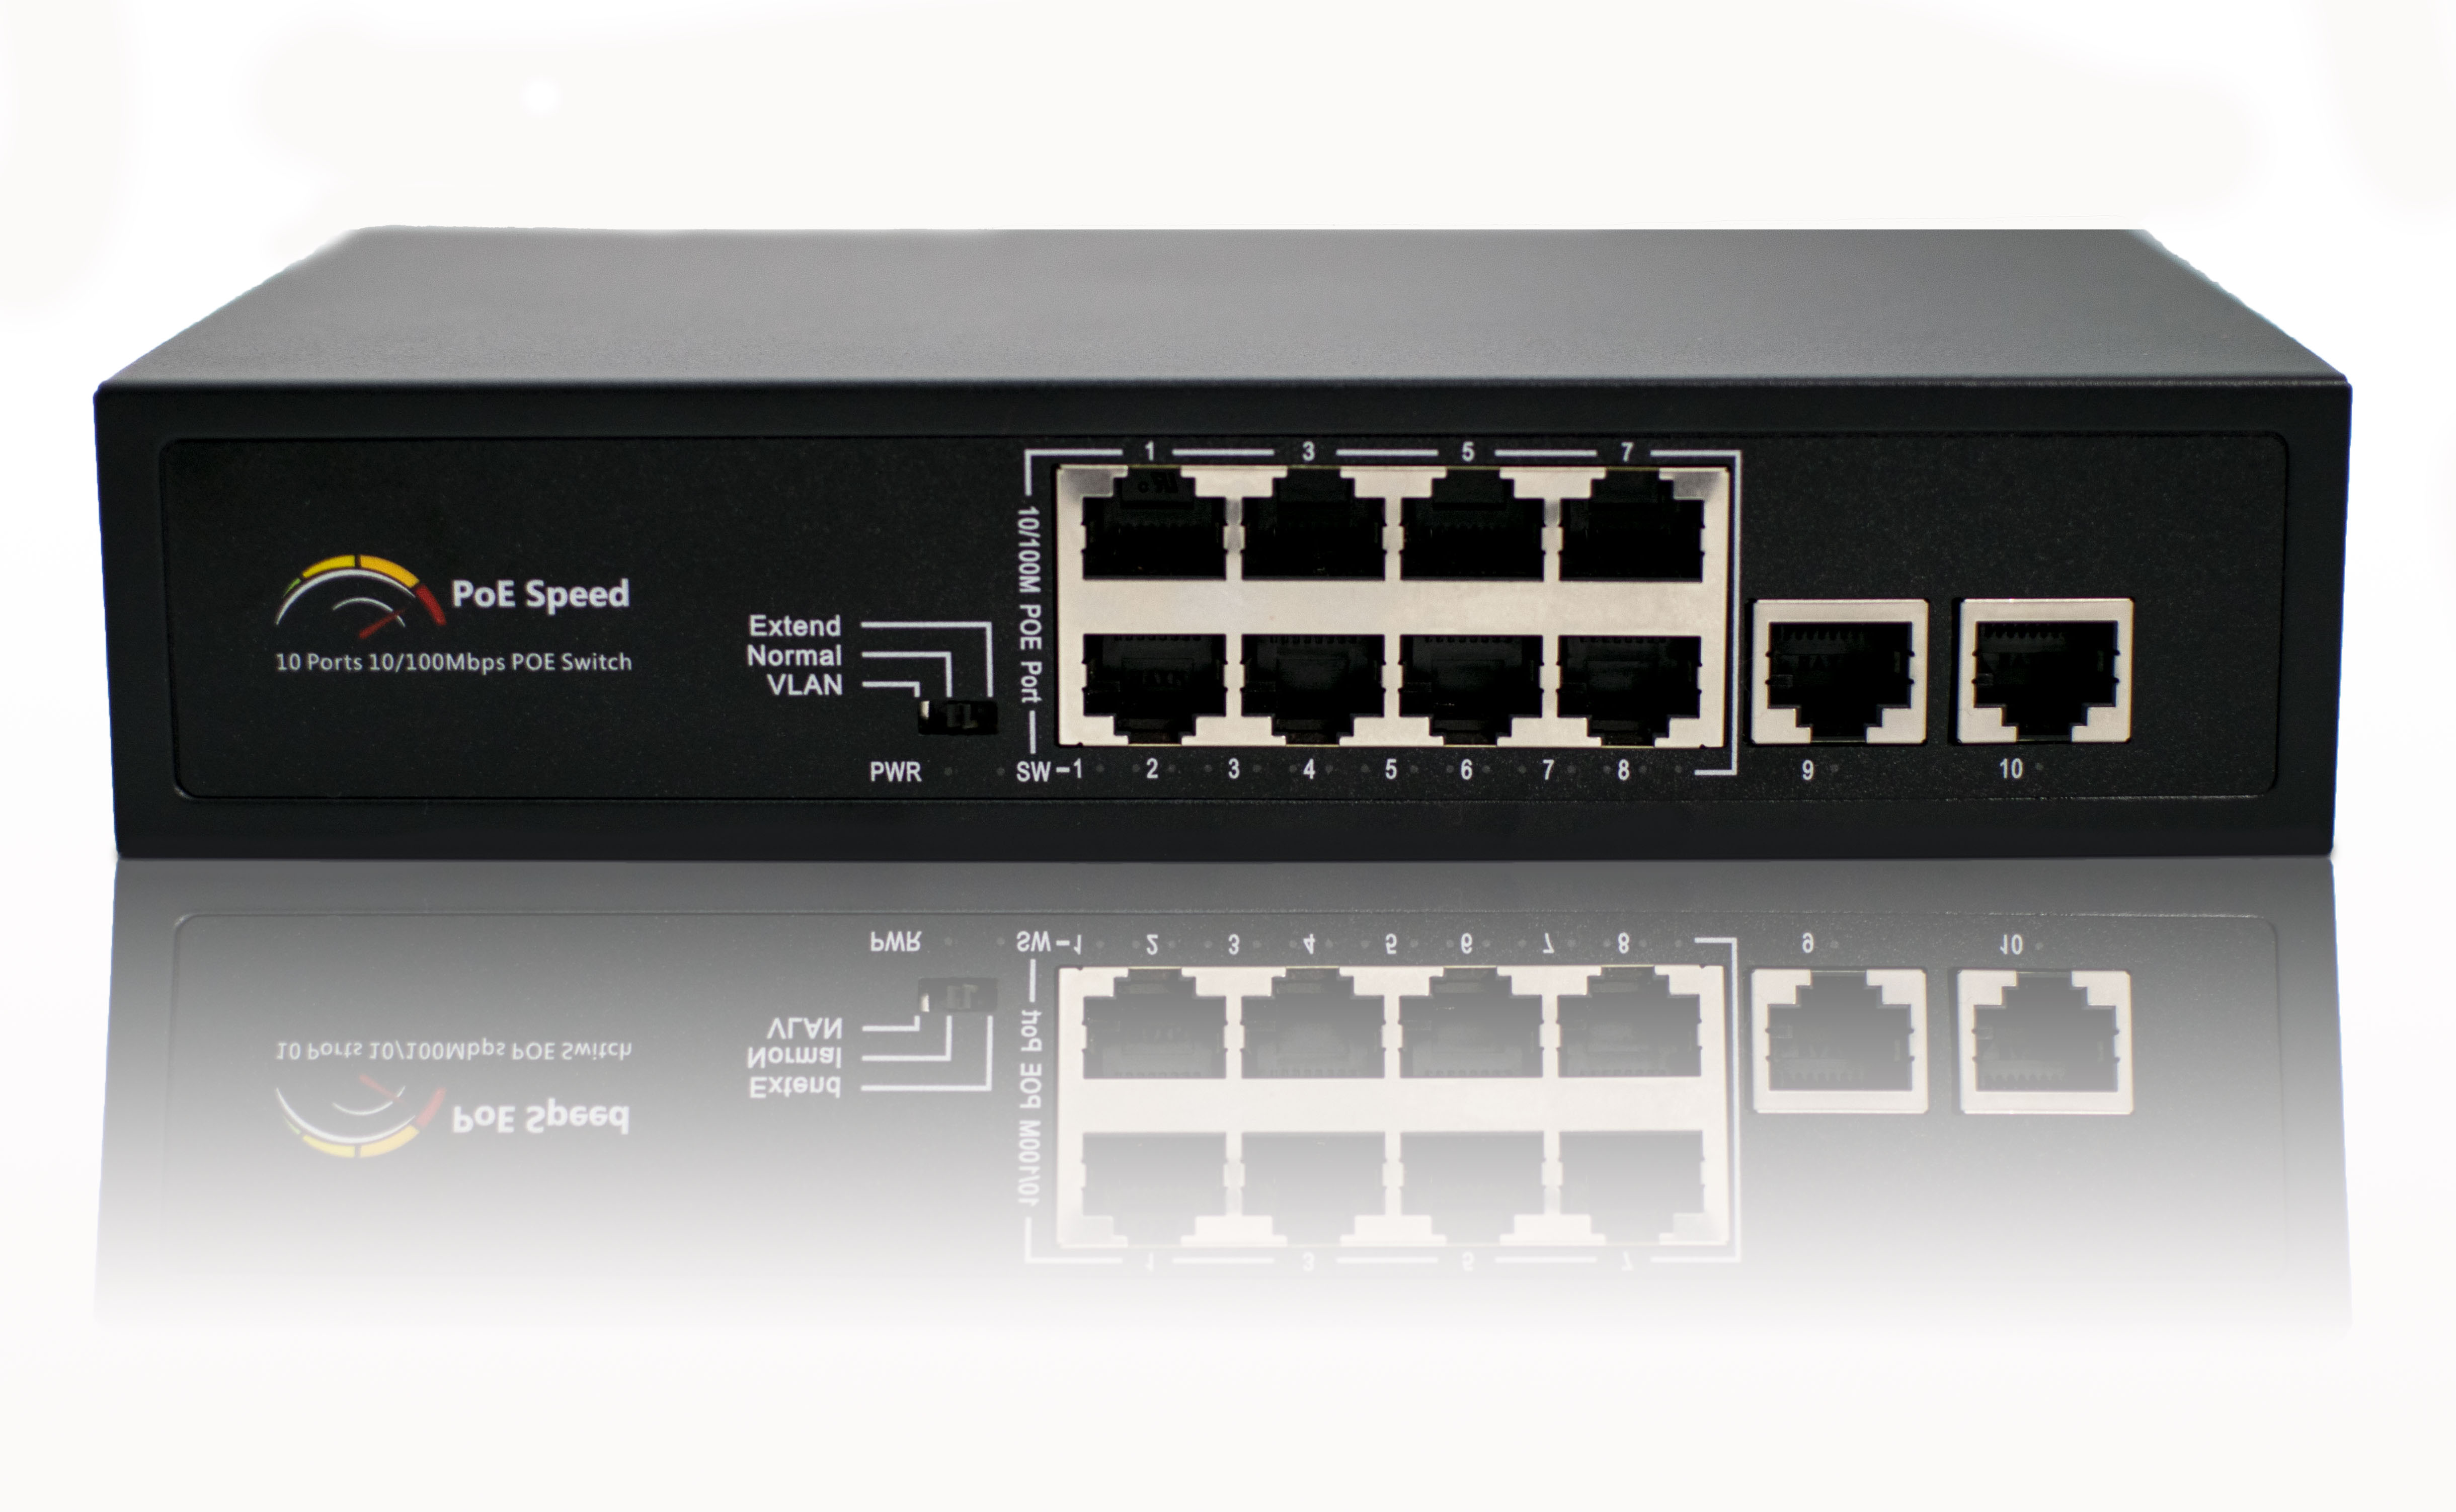 8-Port PoE switch with Two Ethernet Uplink Ports